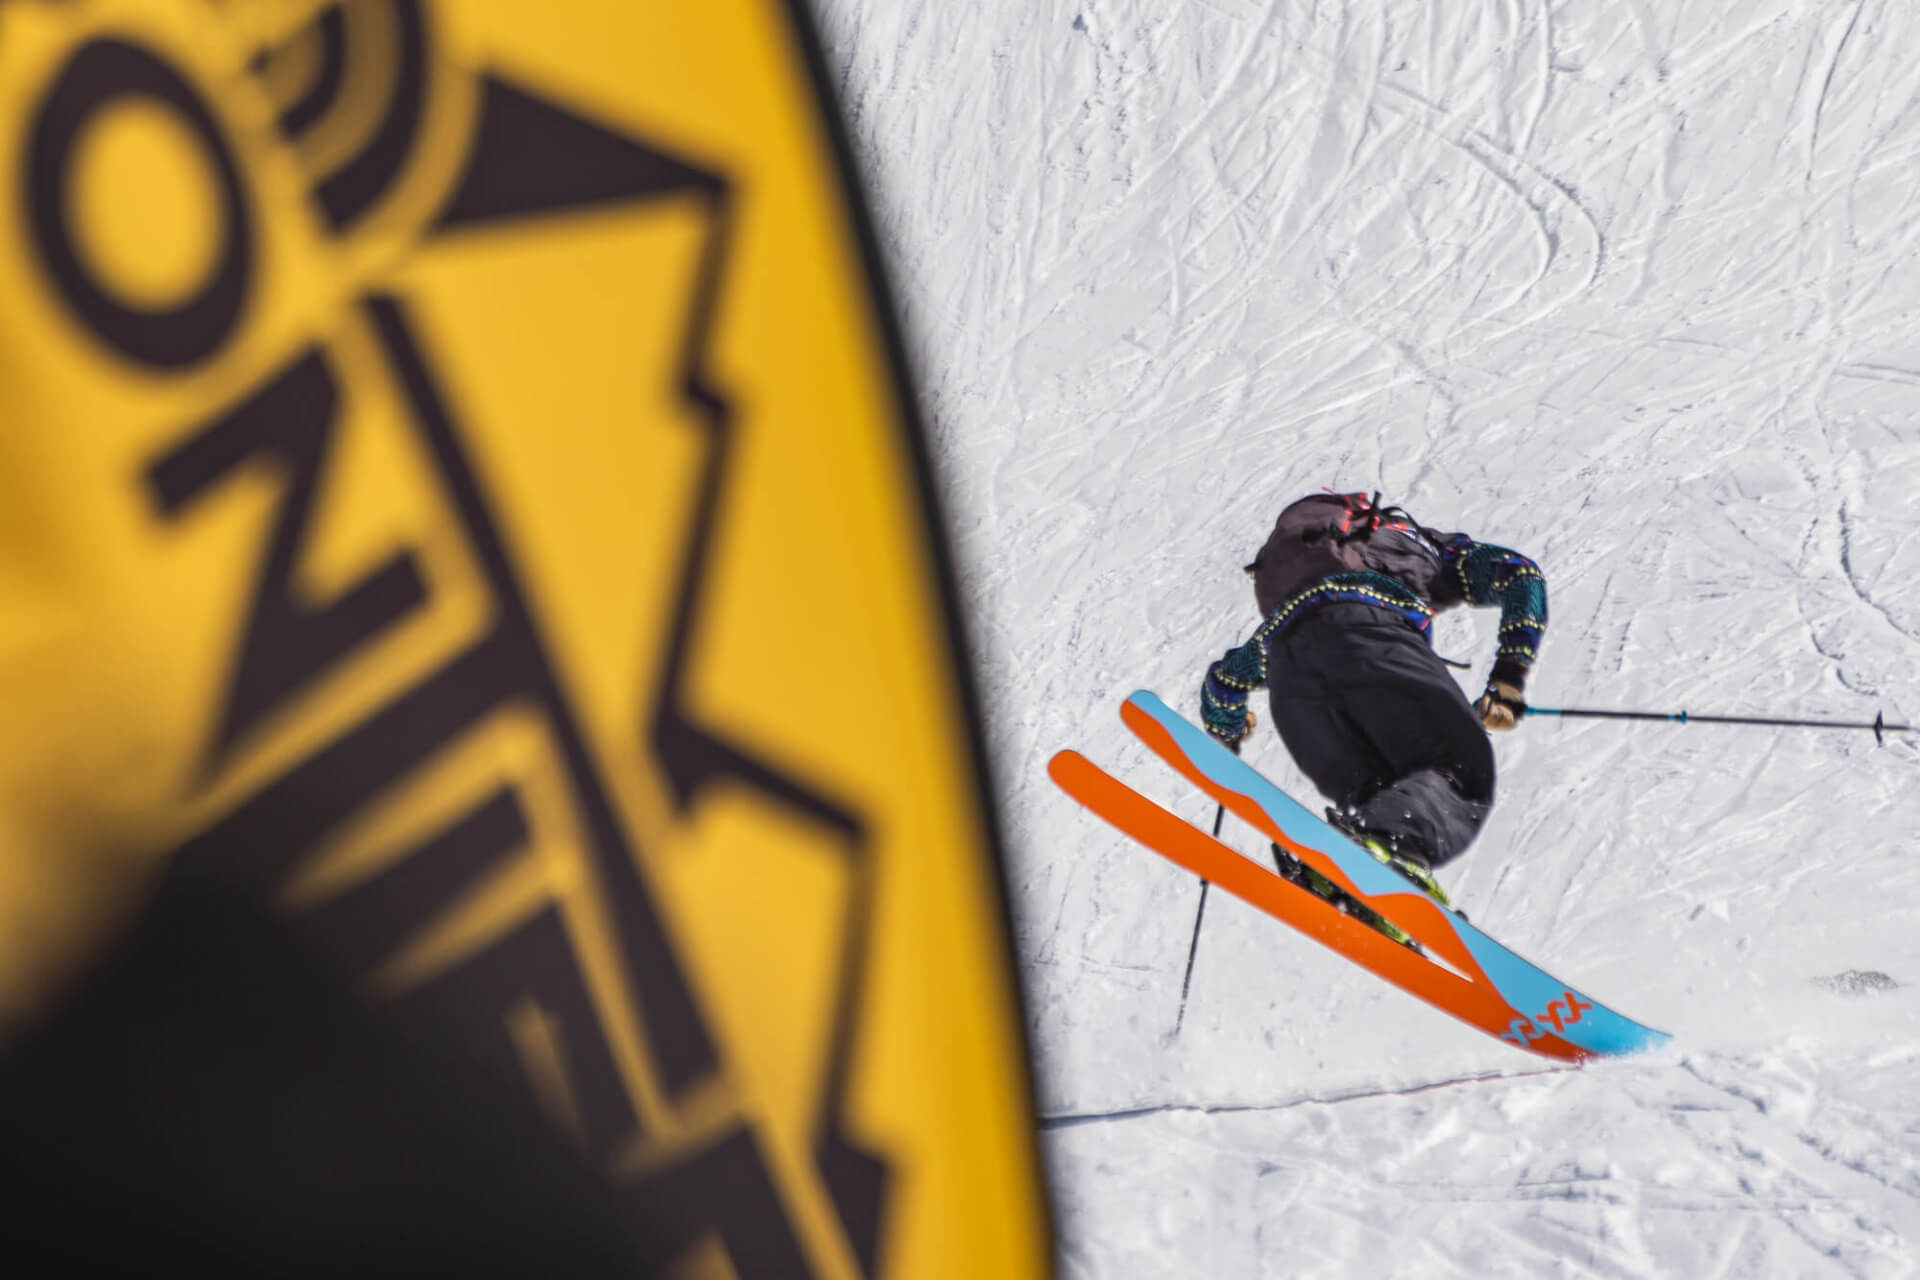 The North Face Frontier x Freeride World Qualifier - Event media coverage. 2019